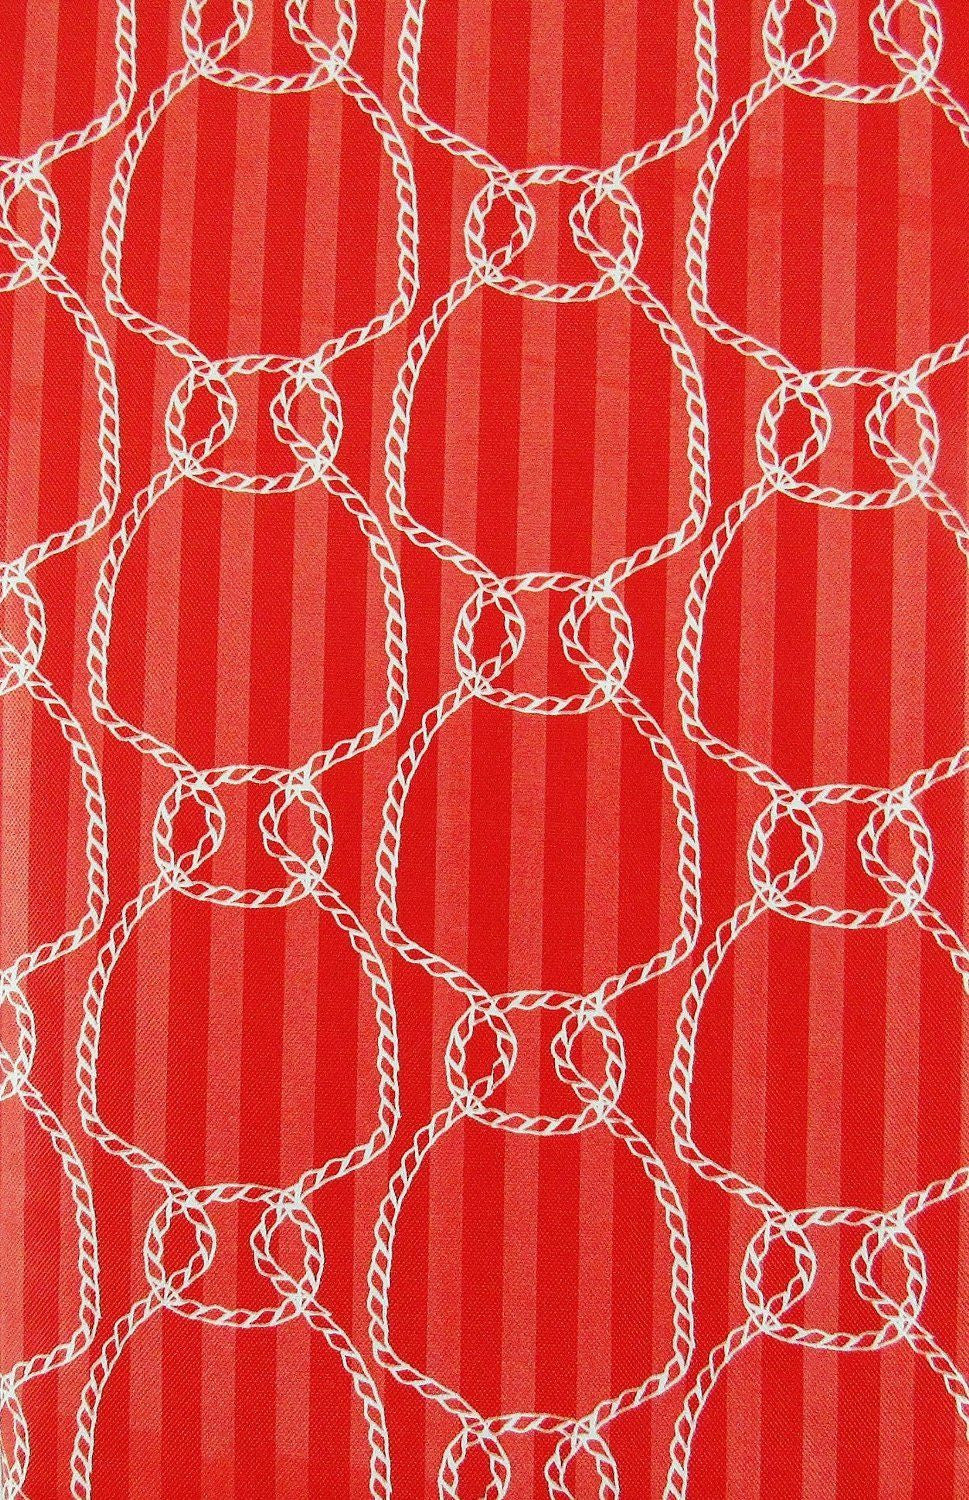 Elrene Red Nautical Ropes Vinyl Flannel Back Tablecloth 52